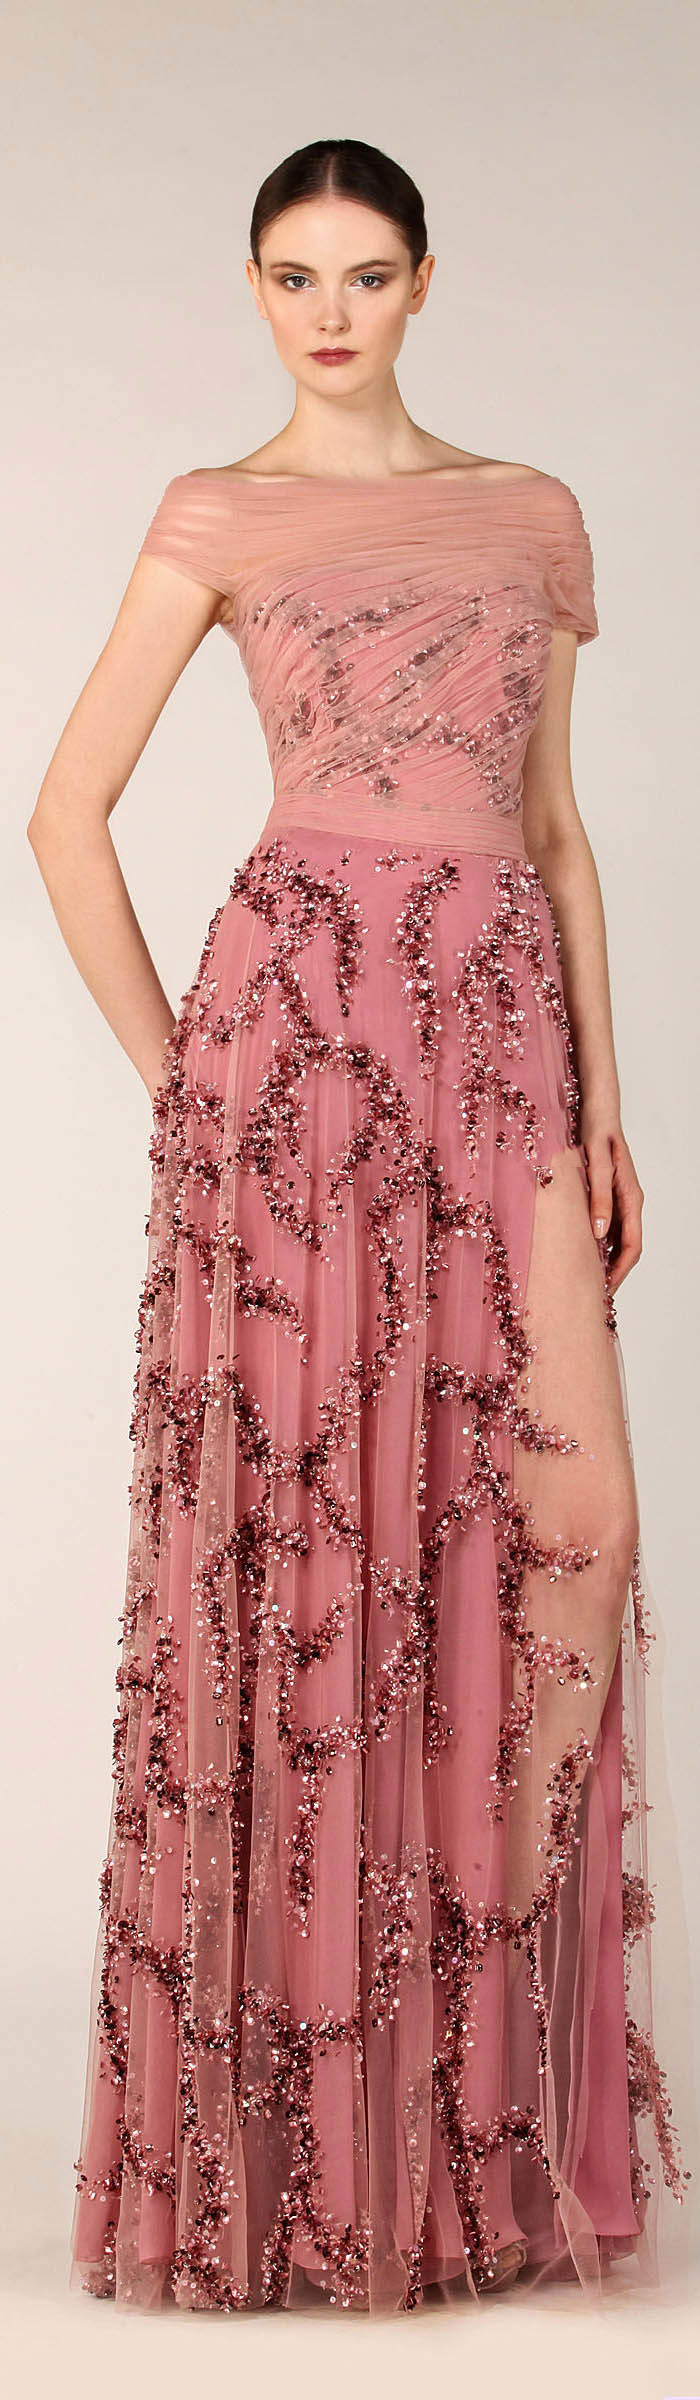 Tony Ward Fall Winter 2013-14 (22)